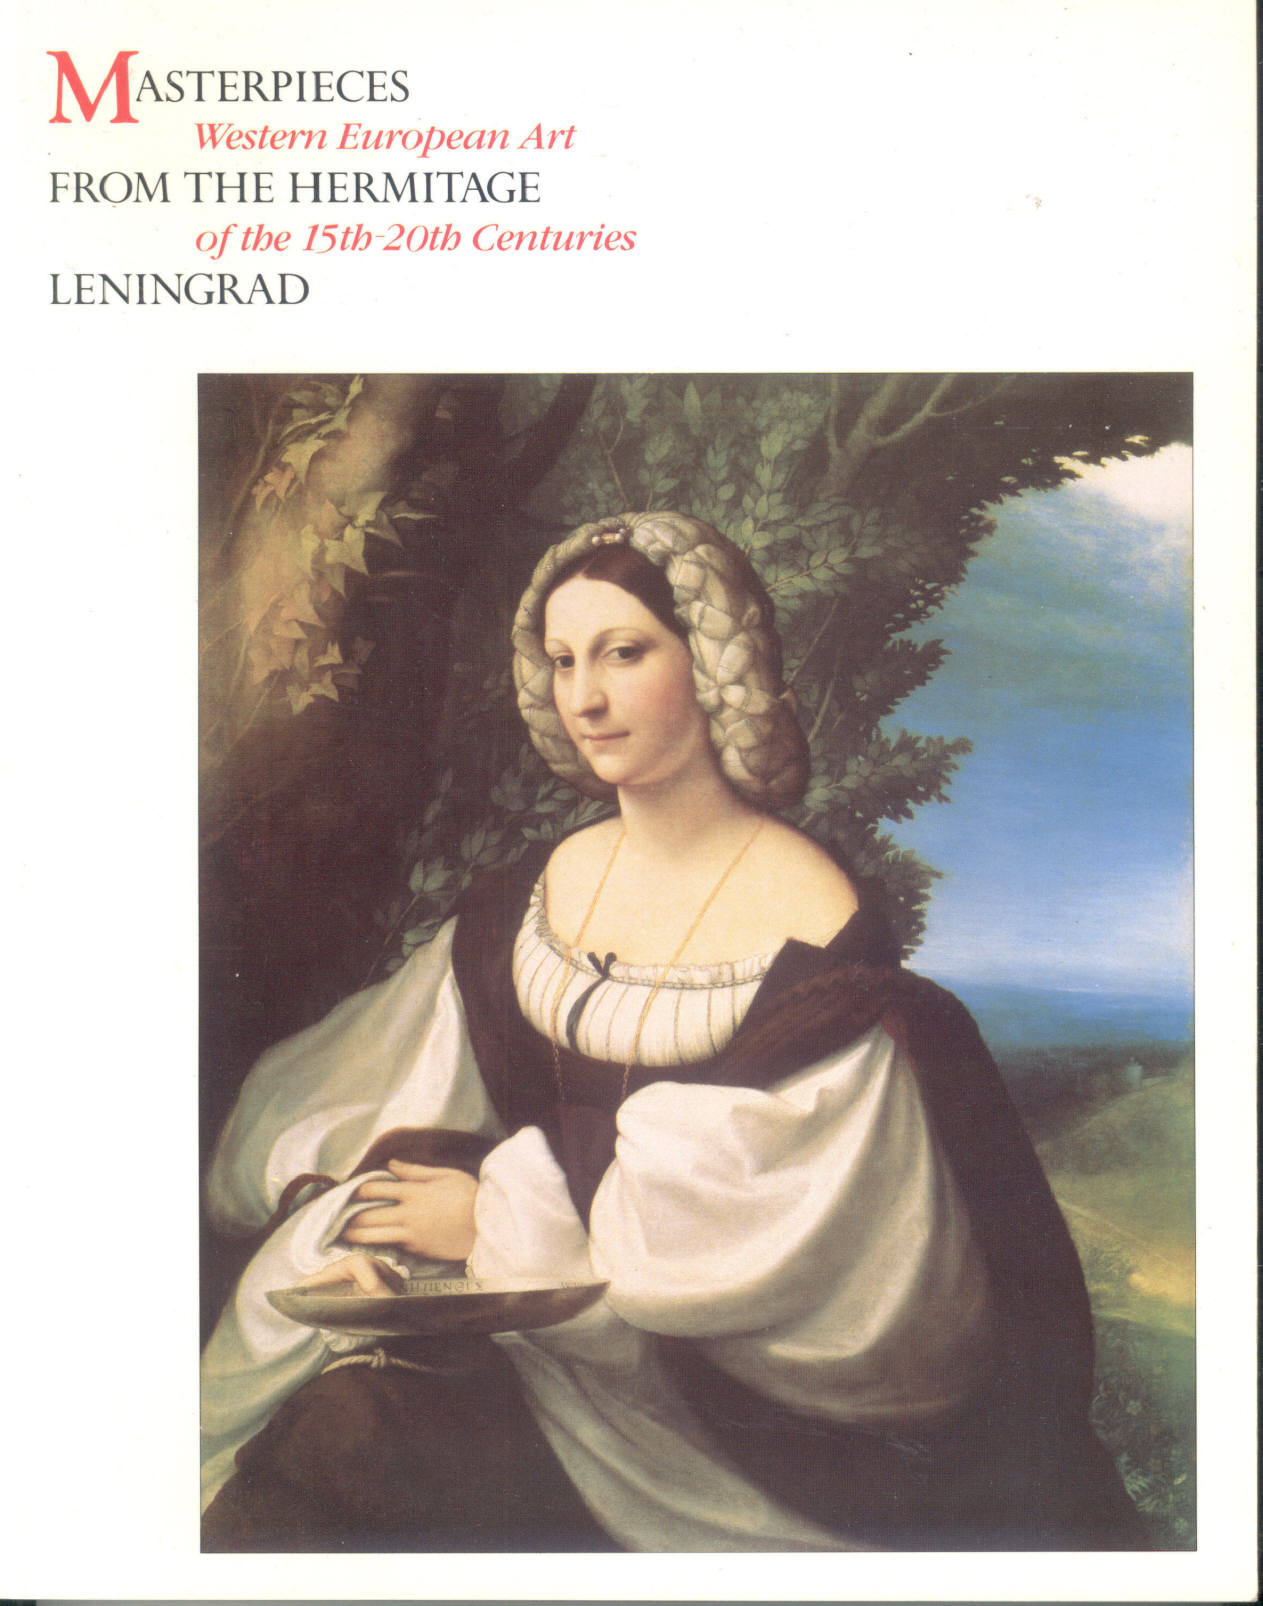 Masterpieces from the Hermitage, Leningrad: Western European Art of the 15th-20th Centuries